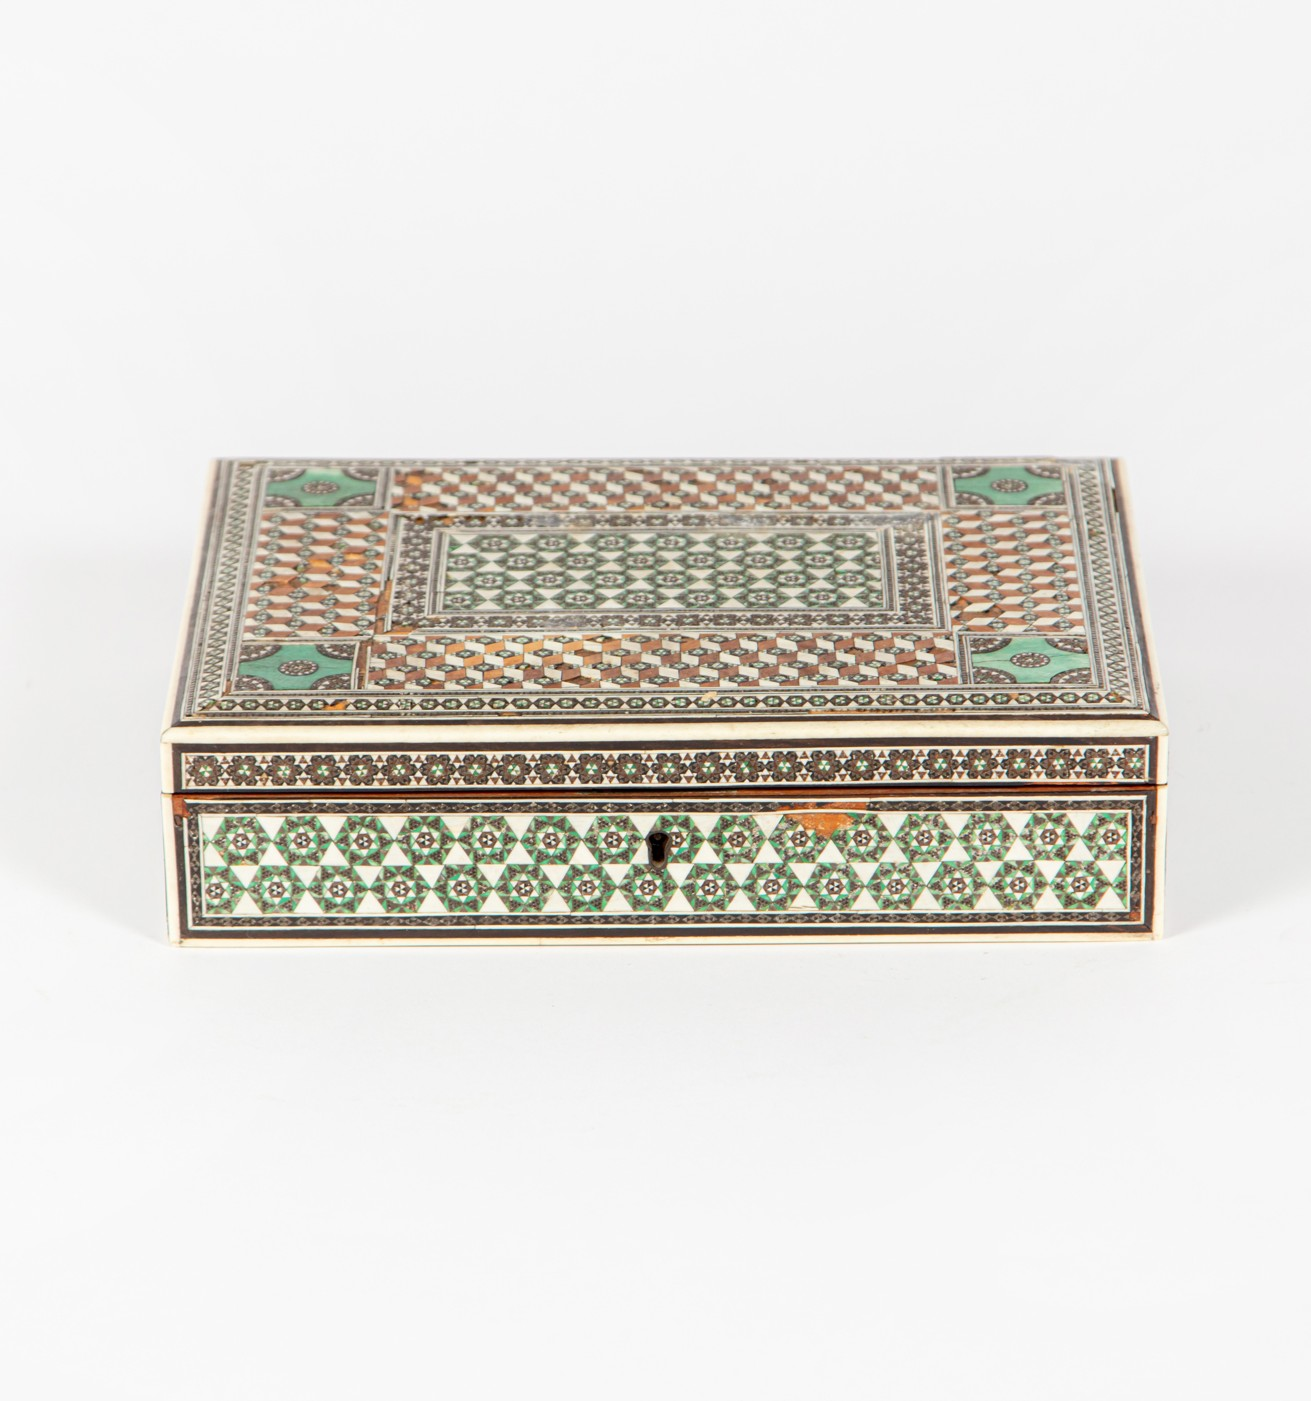 A finely inlaid Anglo Indian box, circa 1860